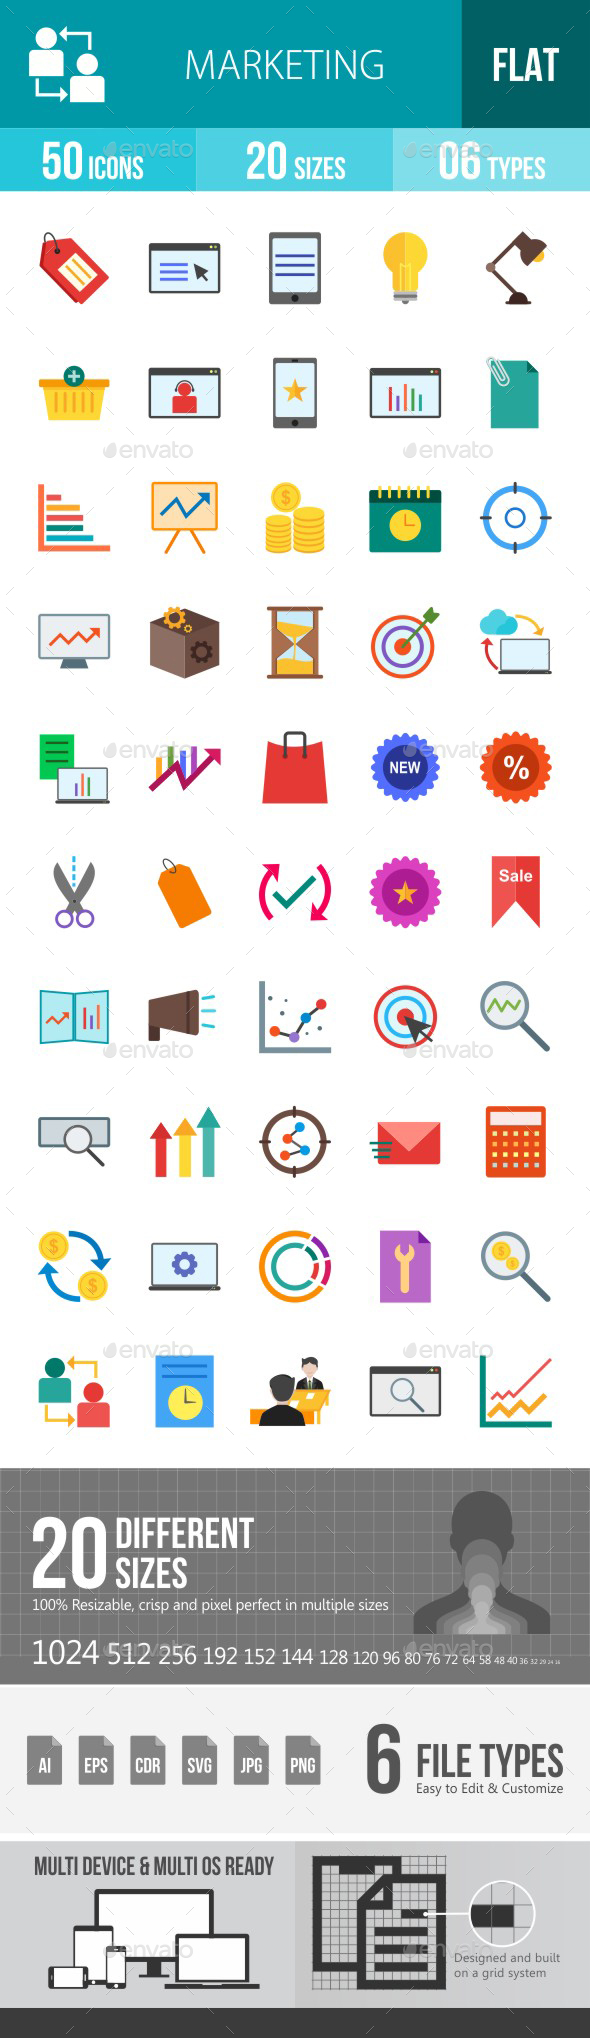 Marketing Flat Multicolor Icons - Icons